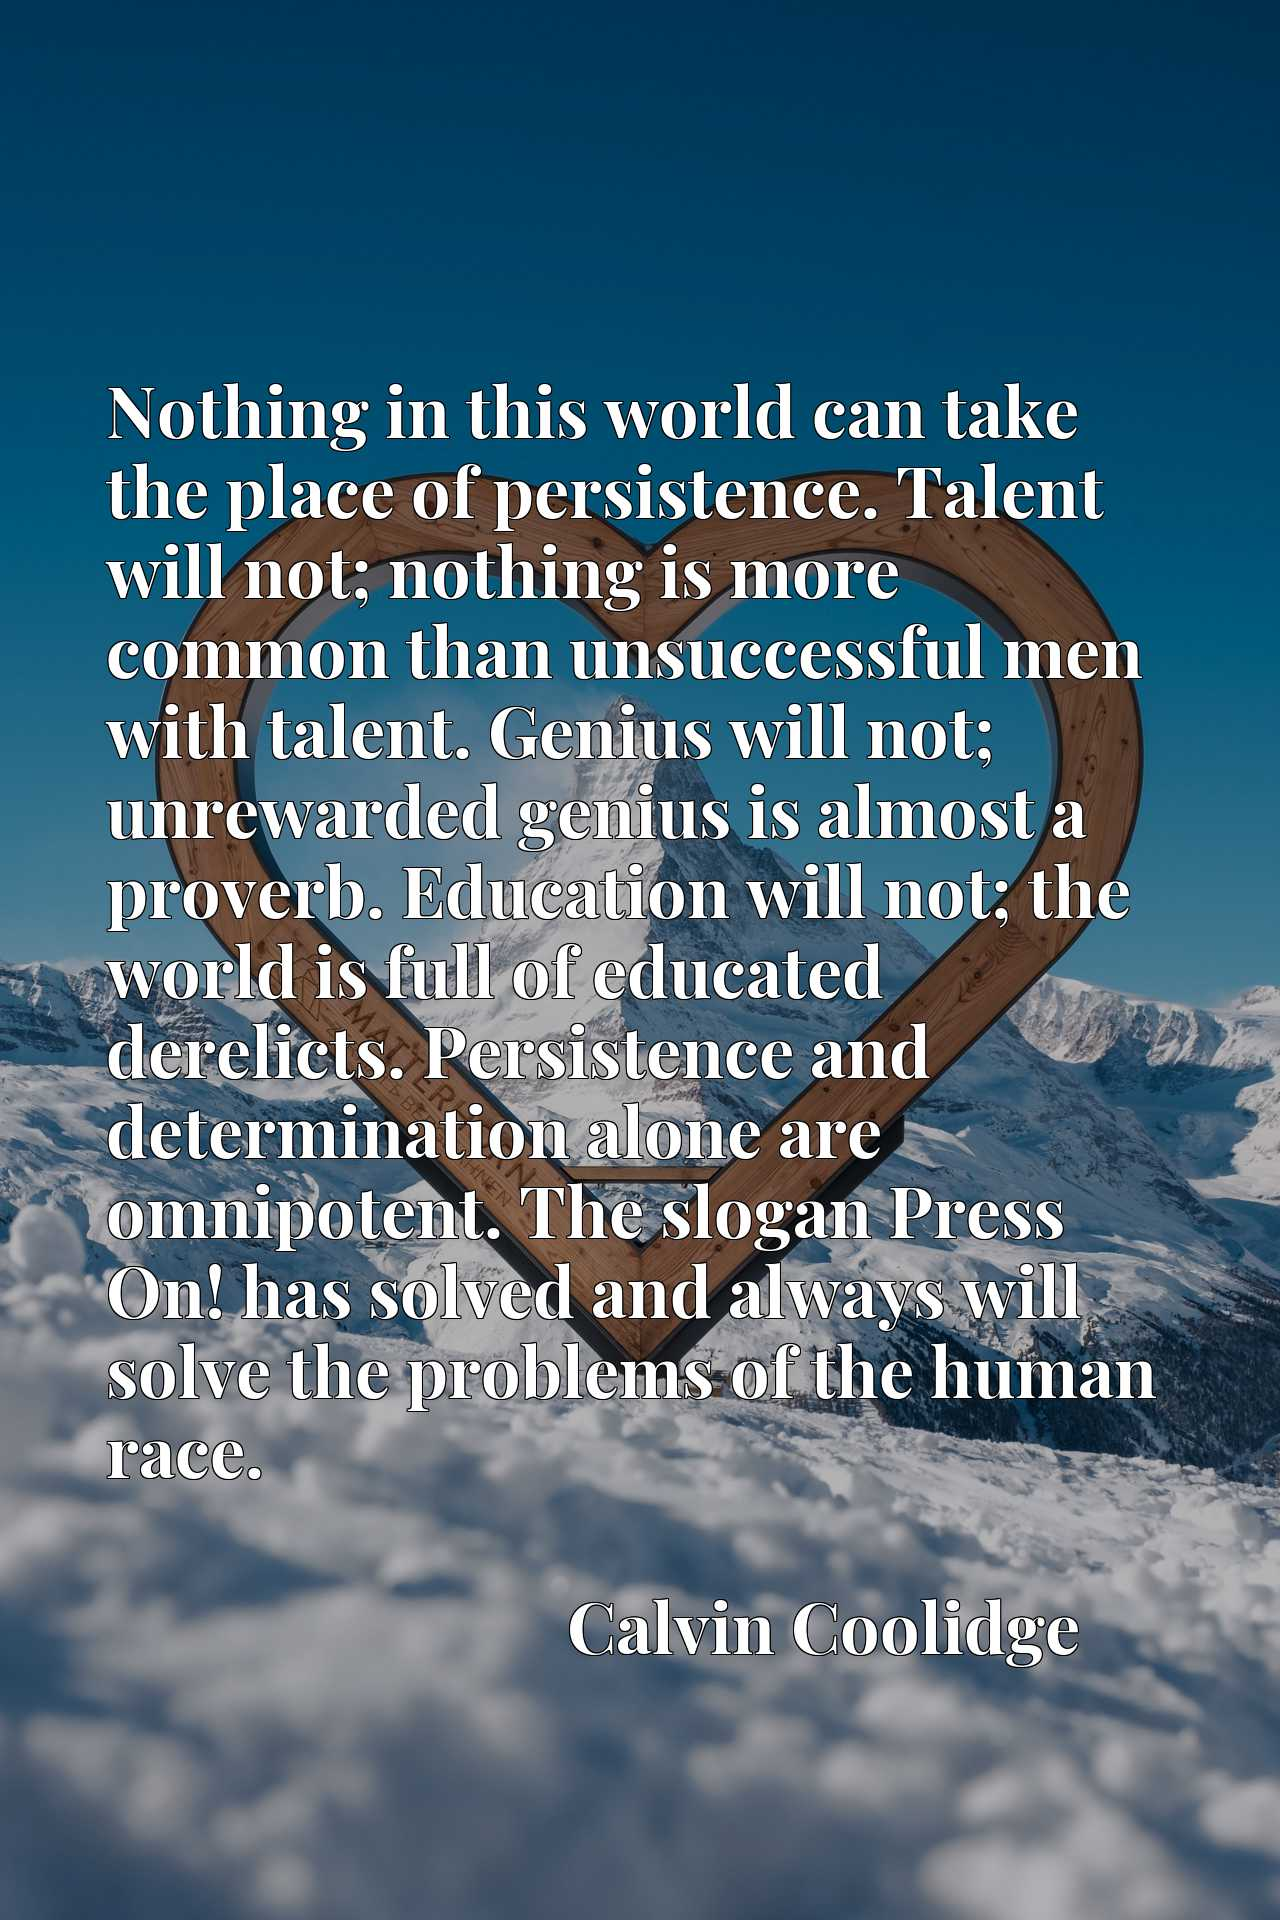 Nothing in this world can take the place of persistence. Talent will not; nothing is more common than unsuccessful men with talent. Genius will not; unrewarded genius is almost a proverb. Education will not; the world is full of educated derelicts. Persistence and determination alone are omnipotent. The slogan Press On! has solved and always will solve the problems of the human race.